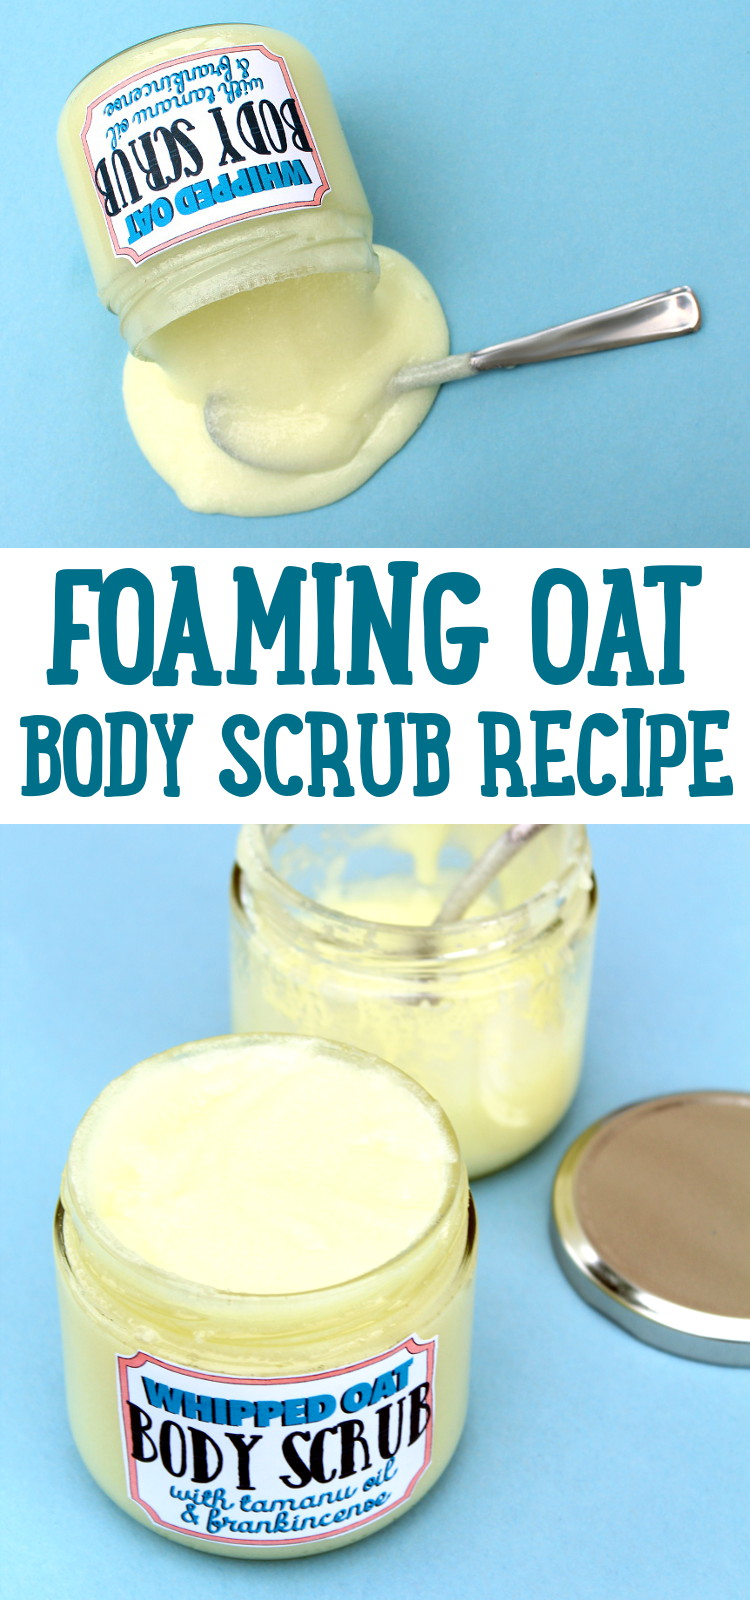 Oat Body Scrub Recipe! This foaming oat body scrub recipe is handmade with skin soothing oat butter, tamanu oil and frankincense essential oil. Both frankincense and tamanu oil are purported to have anti-aging skin care properties and are therefore used in a variety of products that help to diminish the appearance of fine lines and wrinkles.